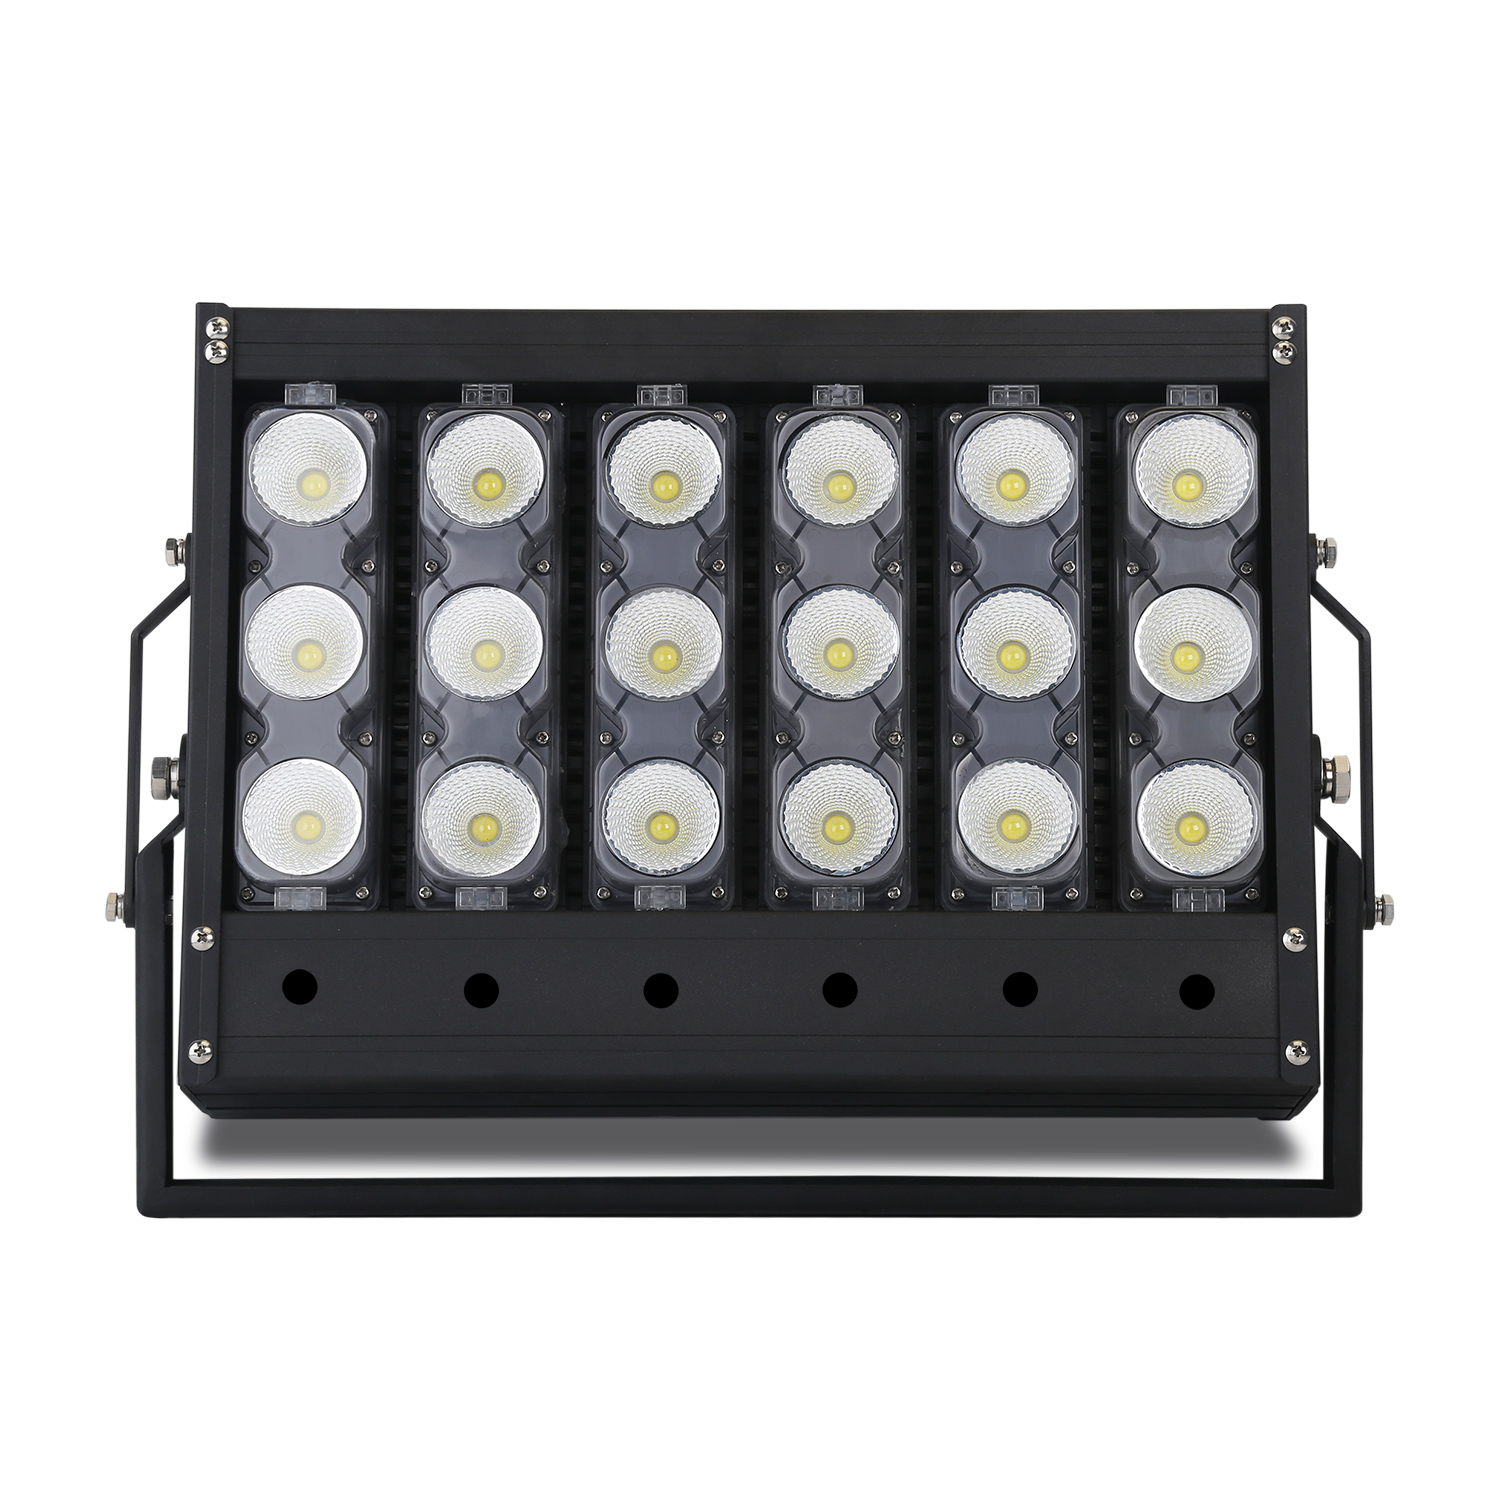 180w led flood light-flyledlight-front-flyledlighting